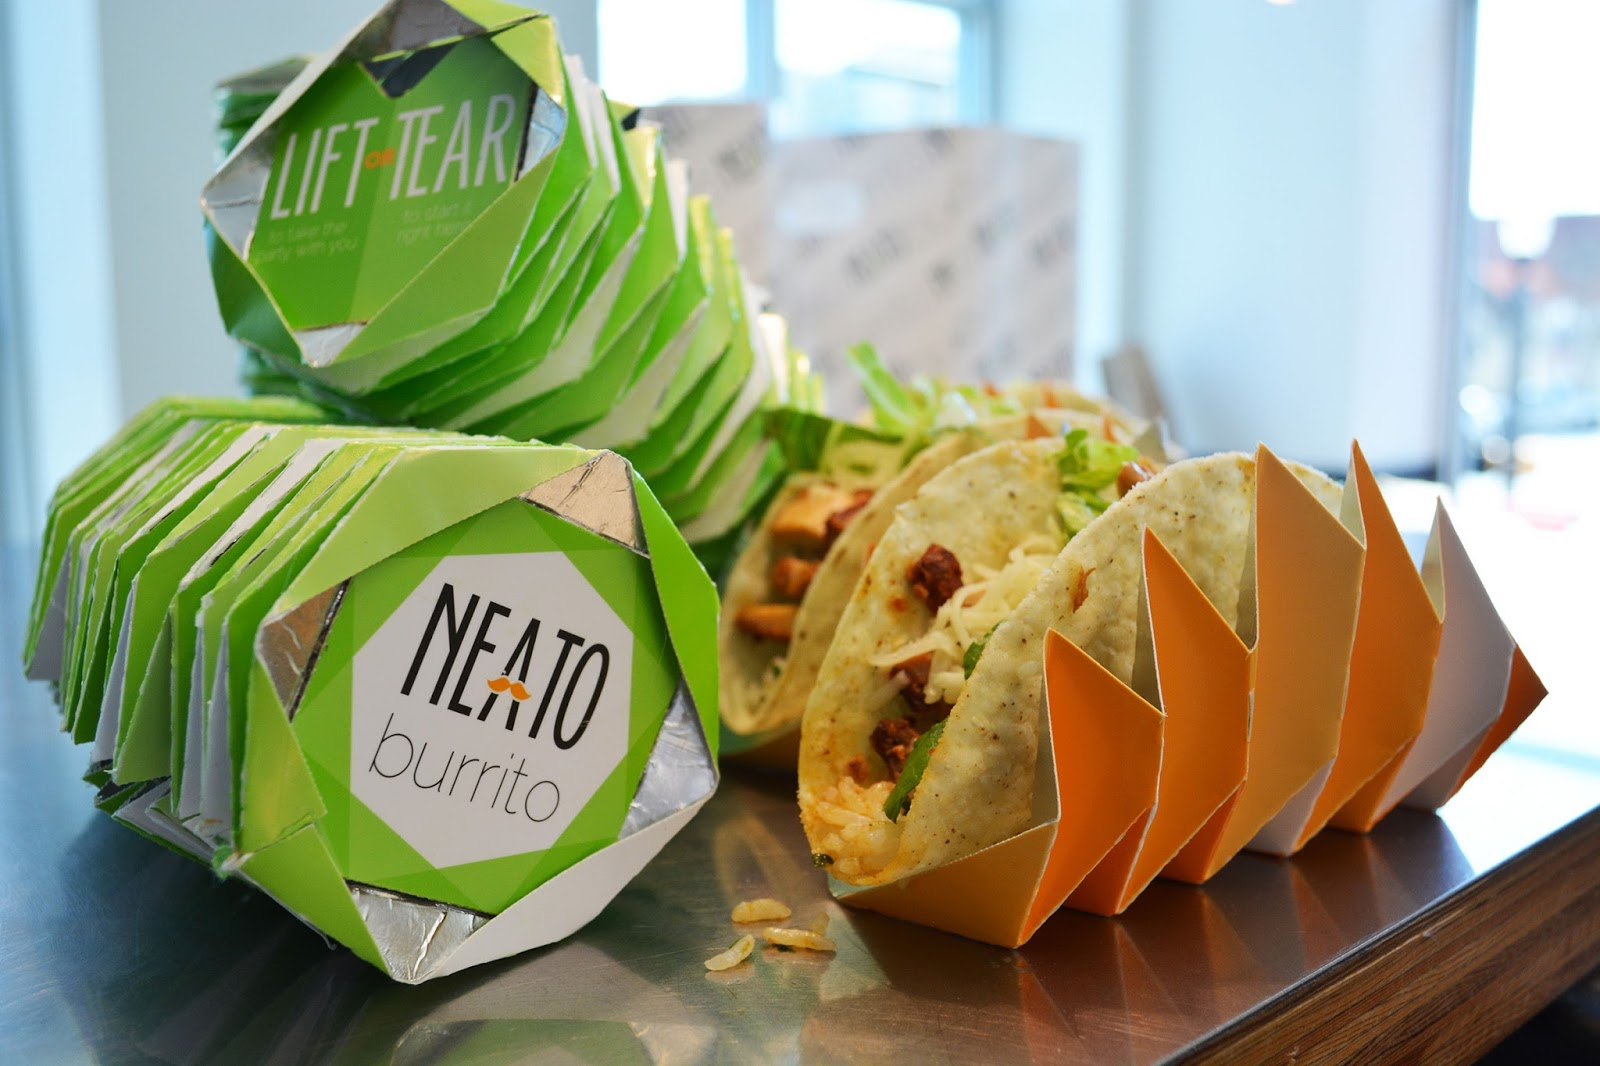 Neato Burrito Student Project On Packaging Of The World